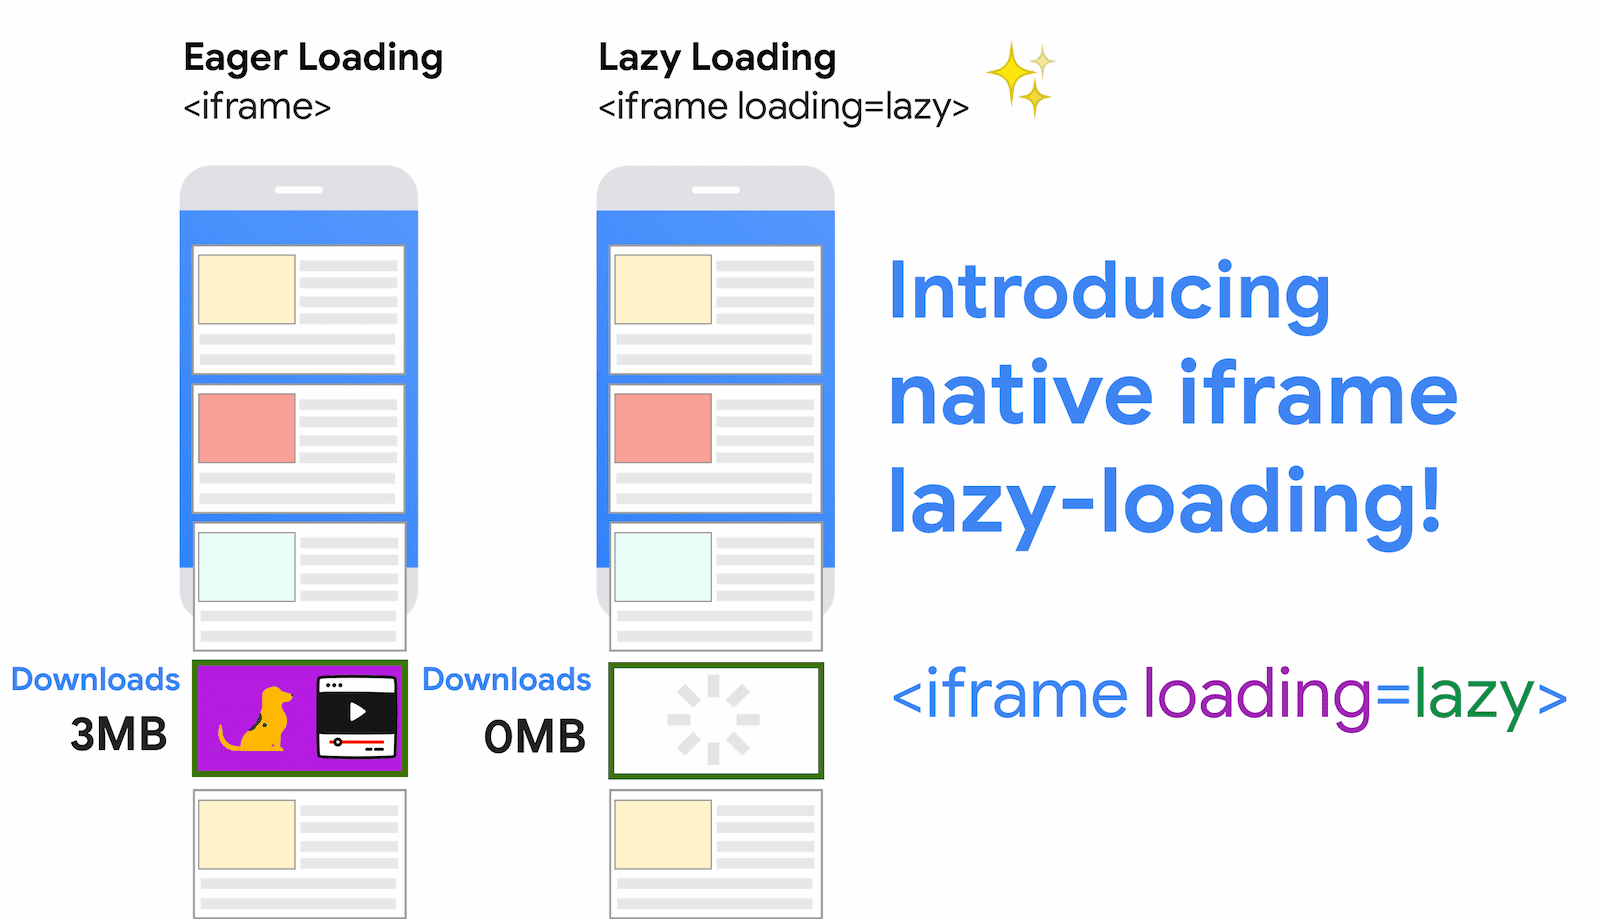 carica iframe con lazyloading